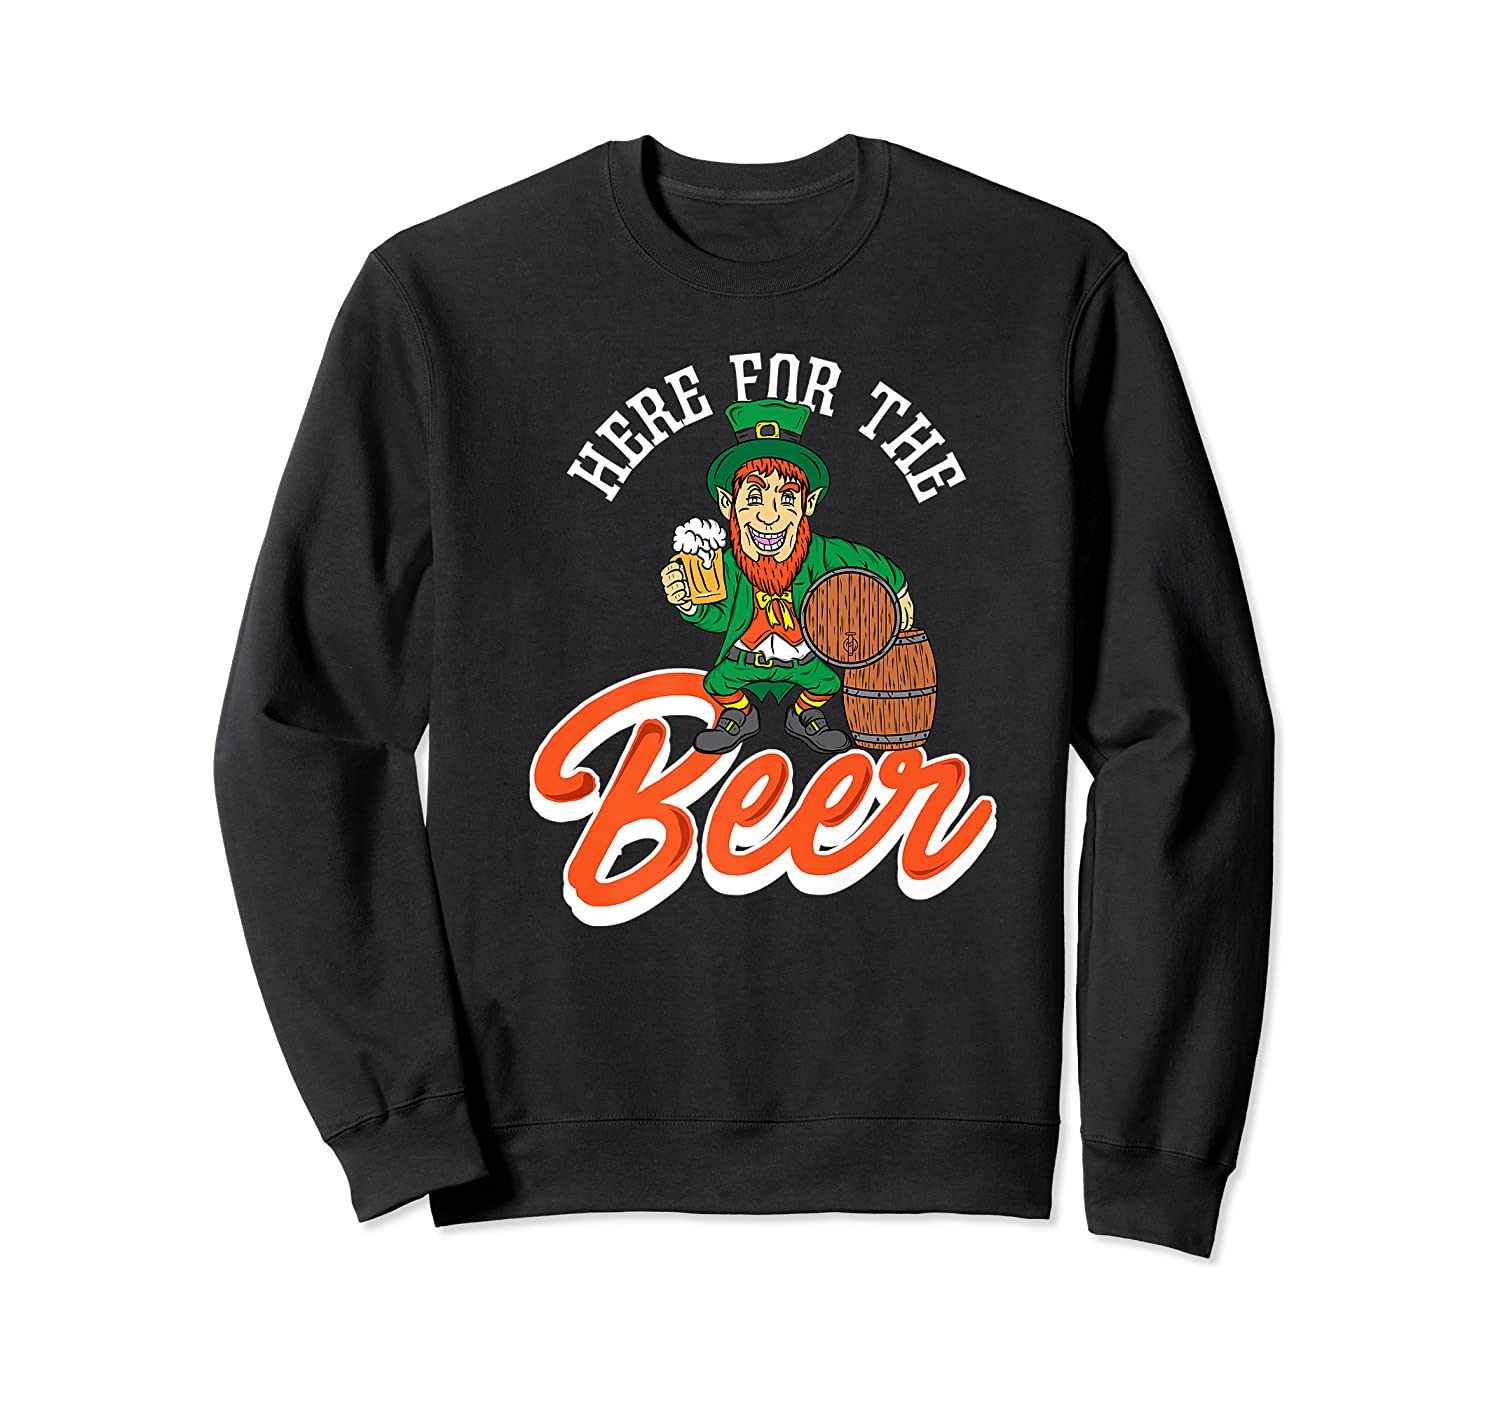 Here For The Beer | Funny St. Patrick's Day Drunk Premium T-shirt Crewneck Sweater